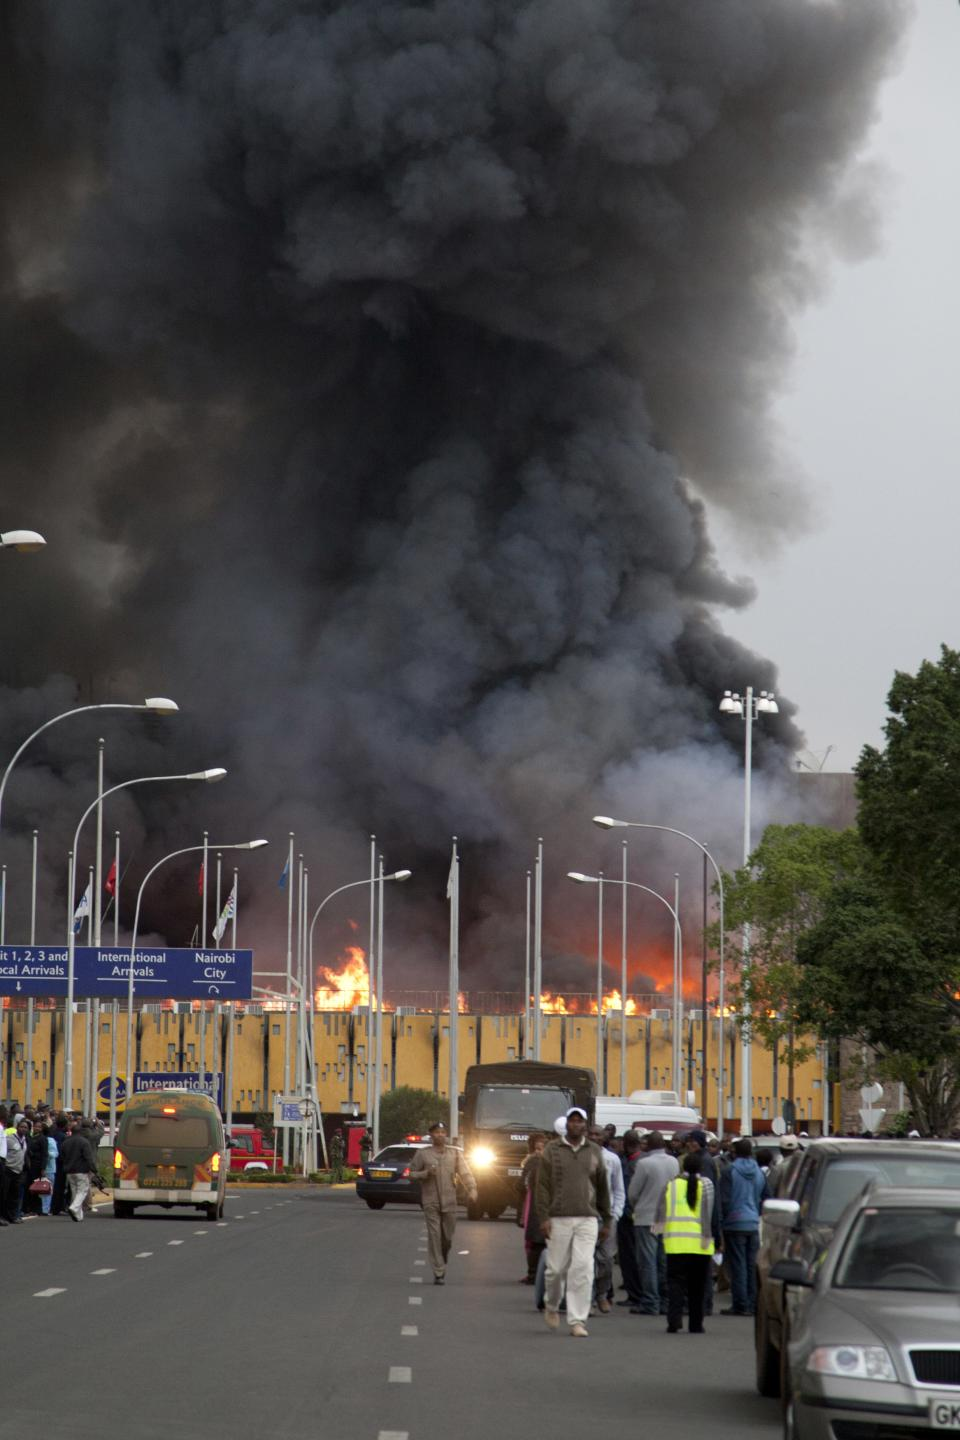 Black smoke billows from the Jomo Kenyatta International Airport in Nairobi, Kenya Wednesday, Aug. 7, 2013. The Kenya Airports Authority said the Kenya's main international airport has been closed until further notice so that emergency teams can battle the fire. (AP Photo/Sayyid Azim)